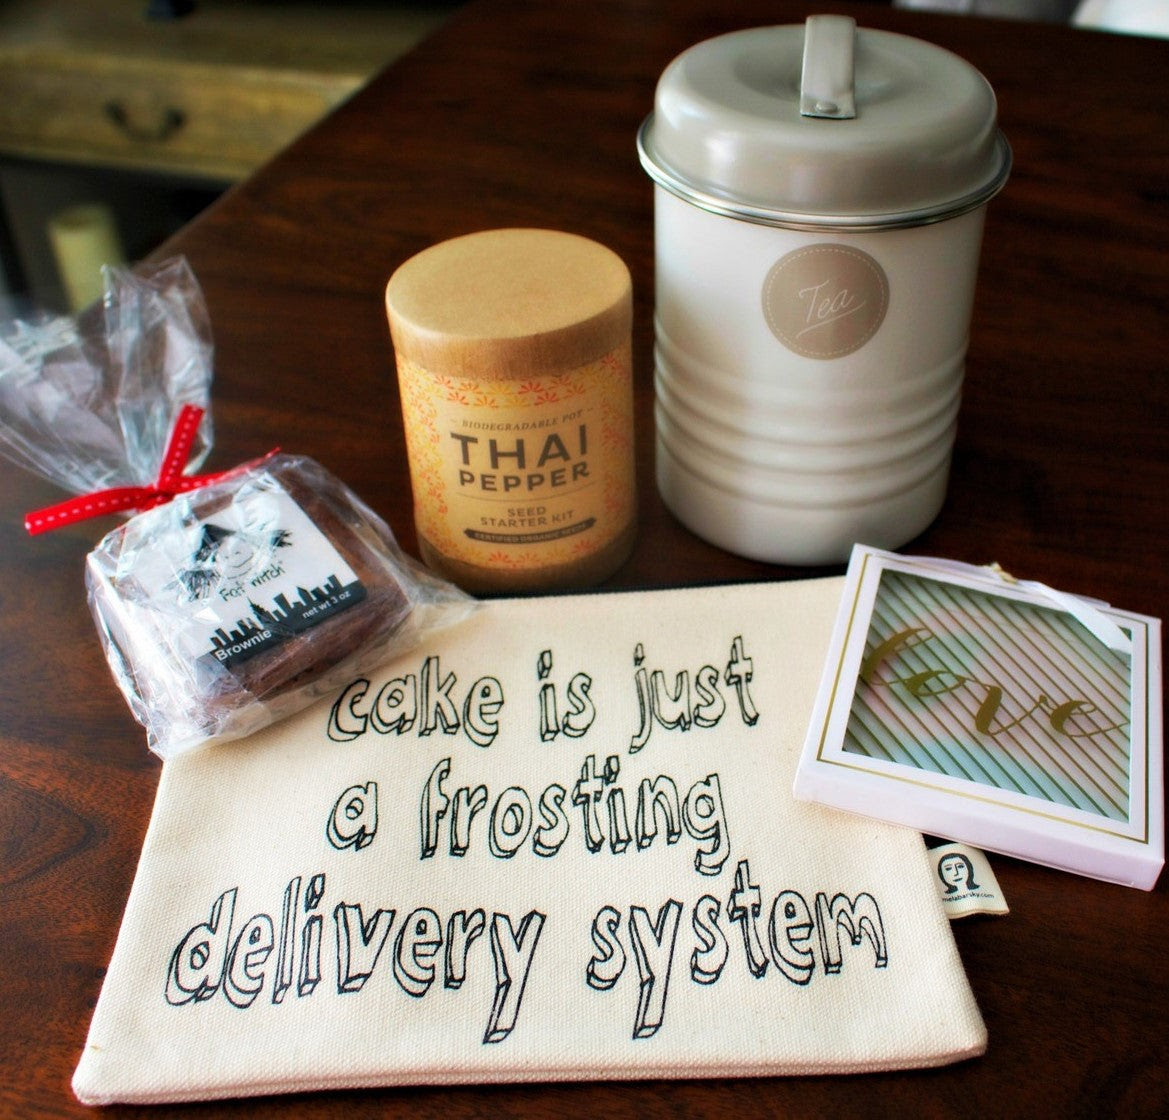 Twelve Months of Serendipity By LLB (6 boxes delivered bi-monthly over 12 months)